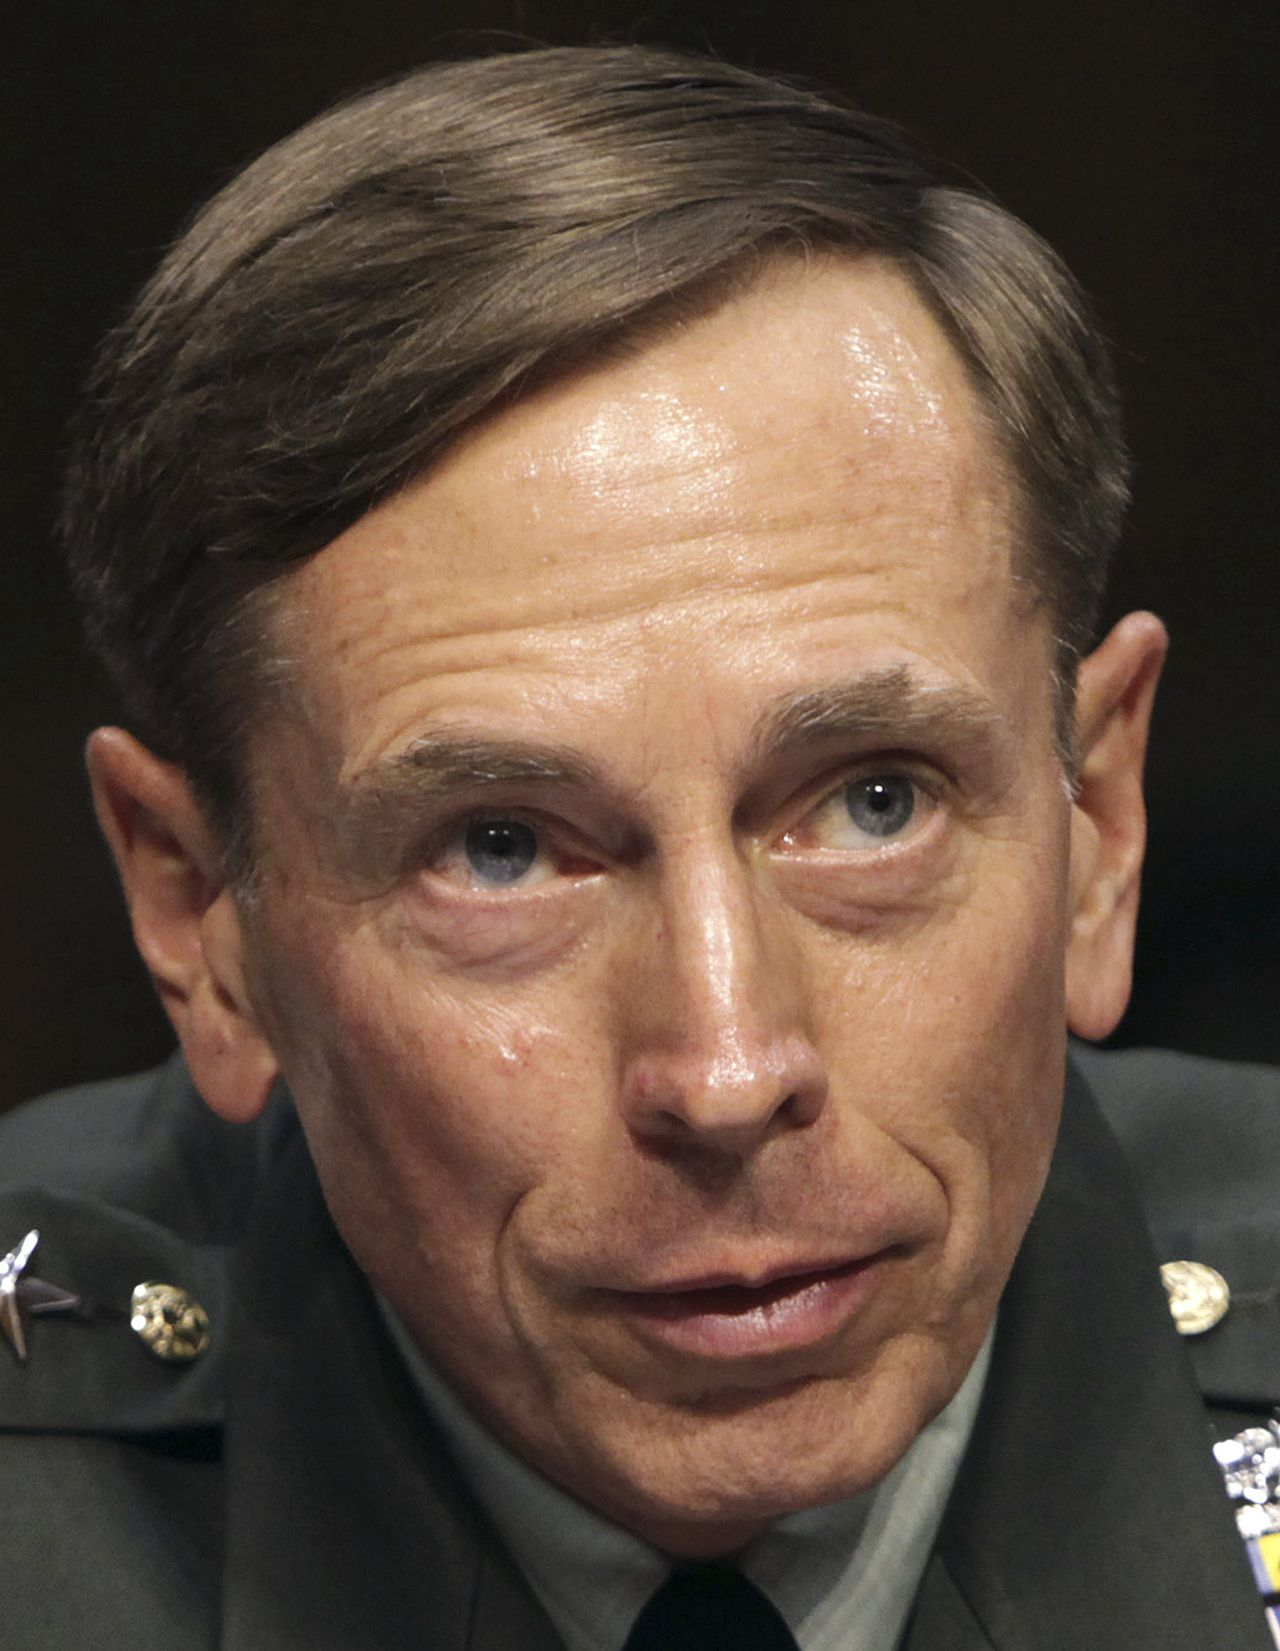 U.S. General David Petraeus gestures during the Senate Intelligence Committee hearing on his nomination to be director of the Central Intelligence Agency on Capitol Hill in Washington in this June 23, 2011 file photo. CIA Director David Petraeus has submitted a letter of resignation to President Barack Obama, Director of National Intelligence James Clapper said on November 9, 2012. REUTERS/Yuri Gripas/Files (UNITED STATES - Tags: POLITICS MILITARY)